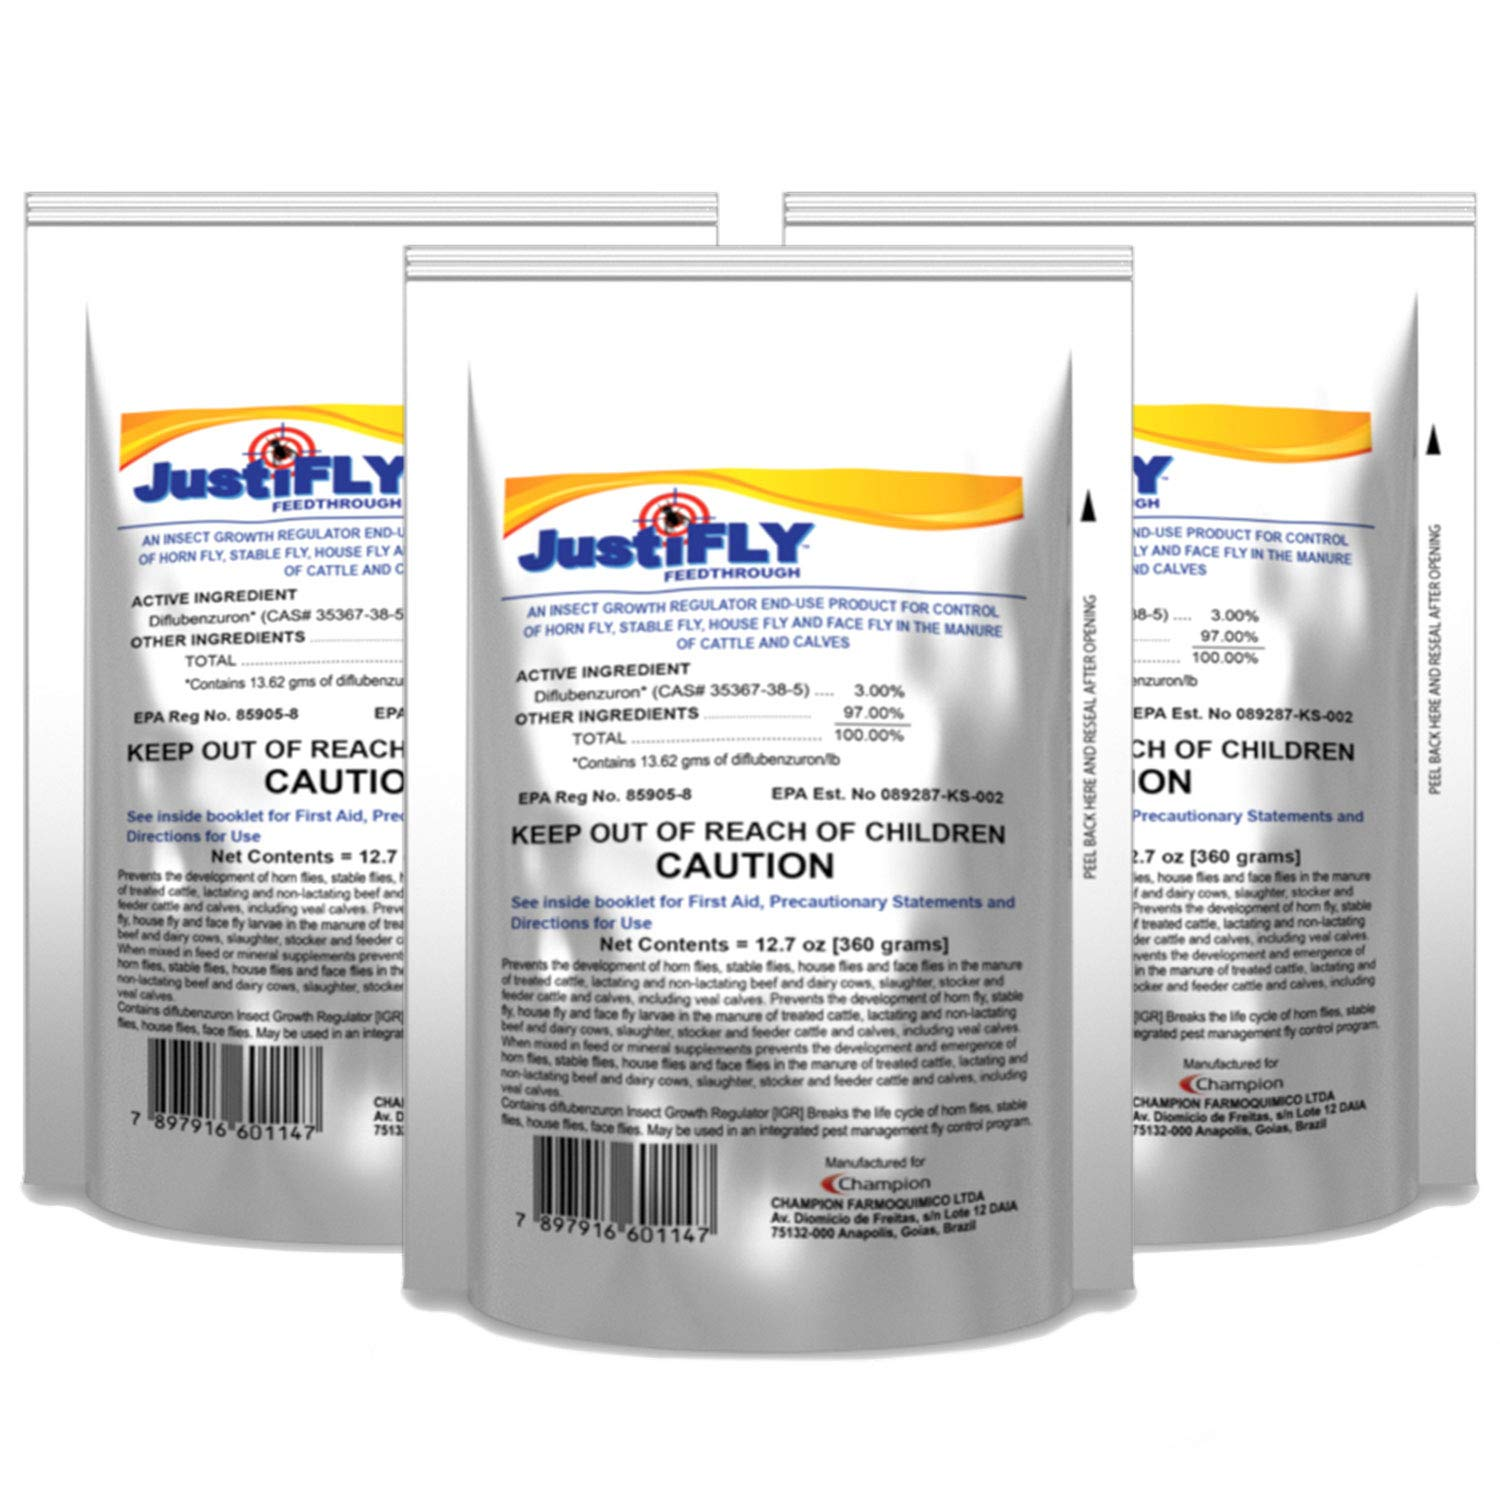 JustiFLY Champion USA Feedthrough Cattle Fly Control, 6 Pack | Non-Toxic Larvicide. Controls All Four Fly Species That Affect Cattle. Over 50 Million Head Treated by JustiFLY